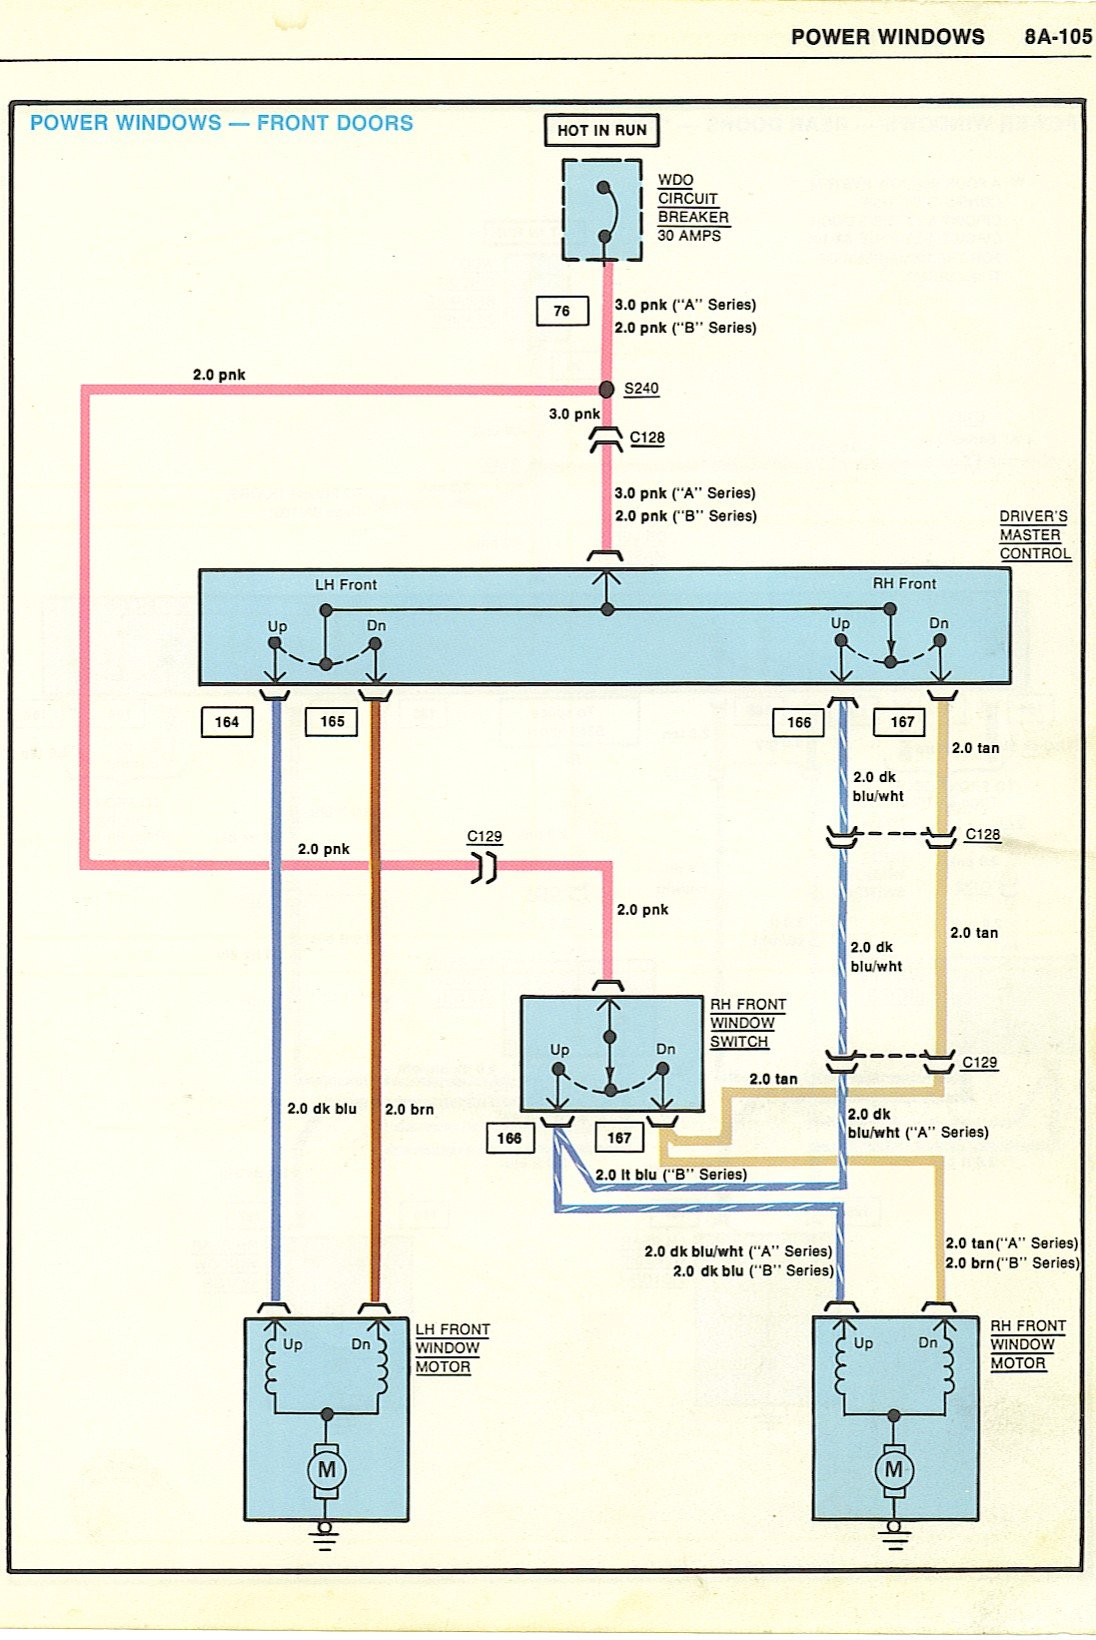 2002 Eclipse Radio Wiring Diagram Power Window Question Gbodyforum 78 88 General